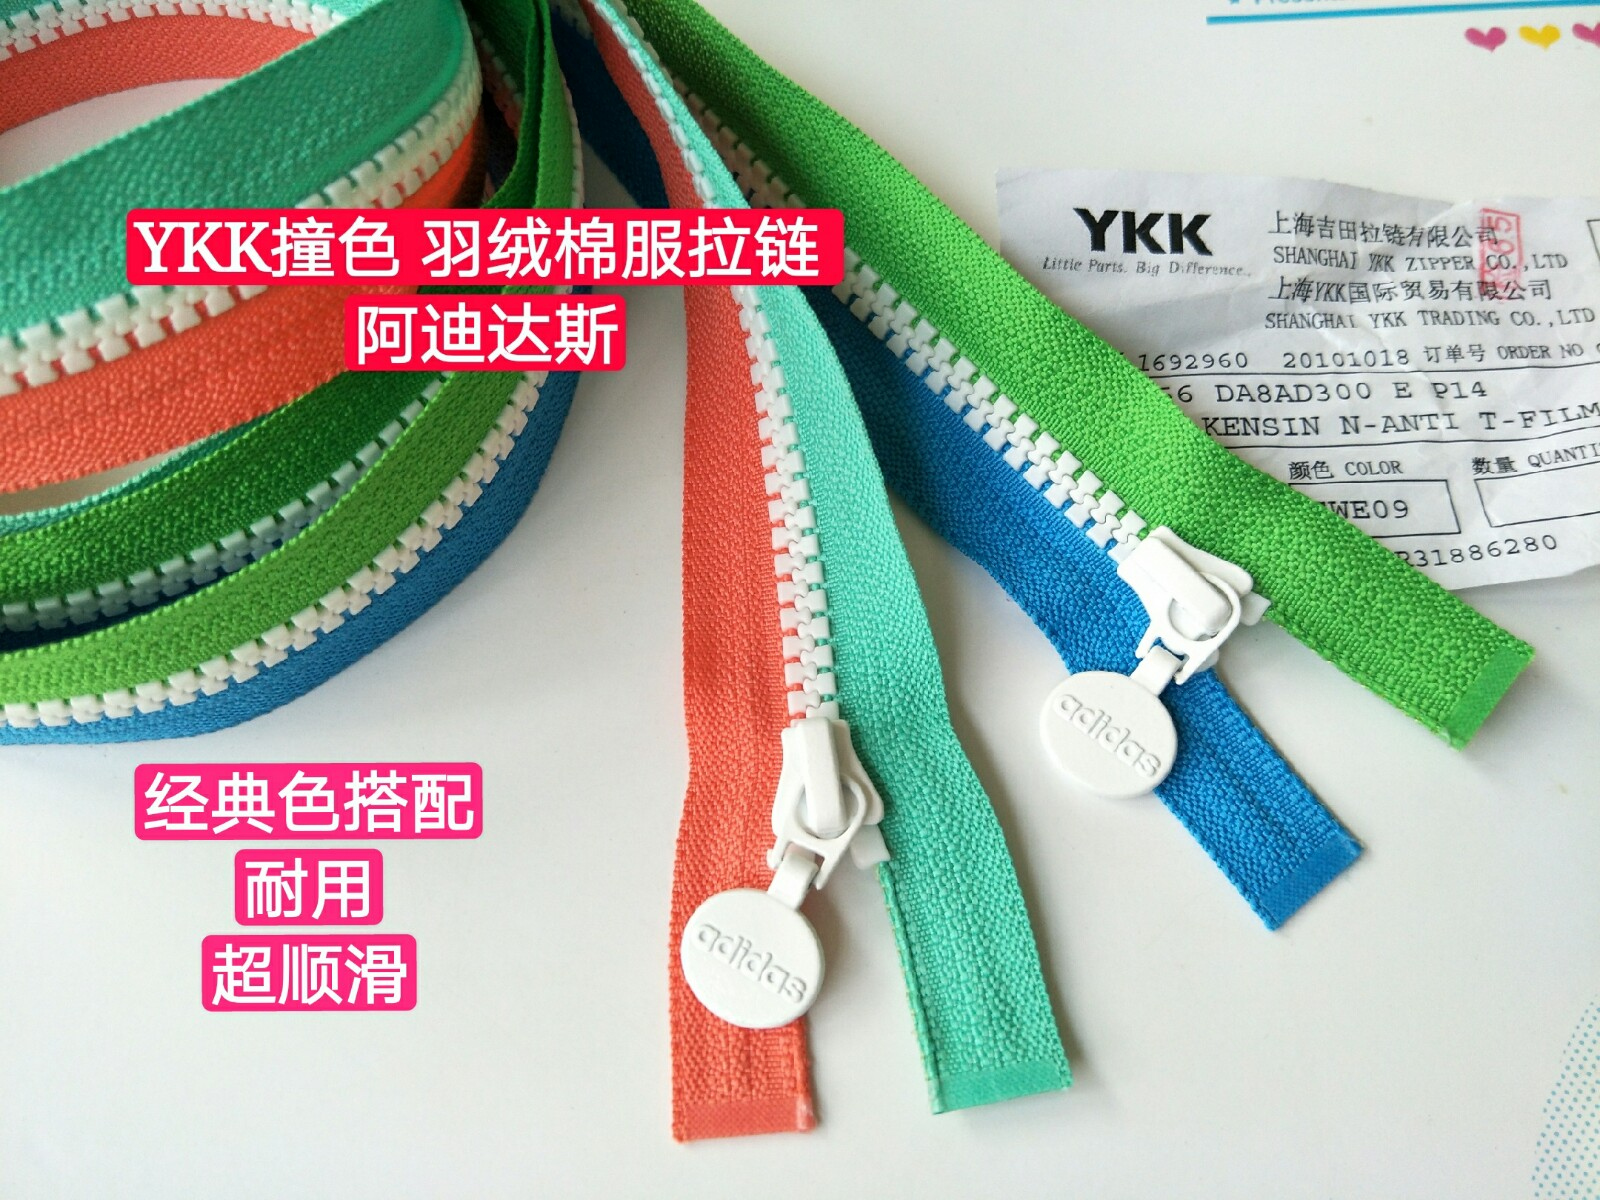 YKK color contrast long coat zipper two color down jacket zipper. The quality of zipper is excellent